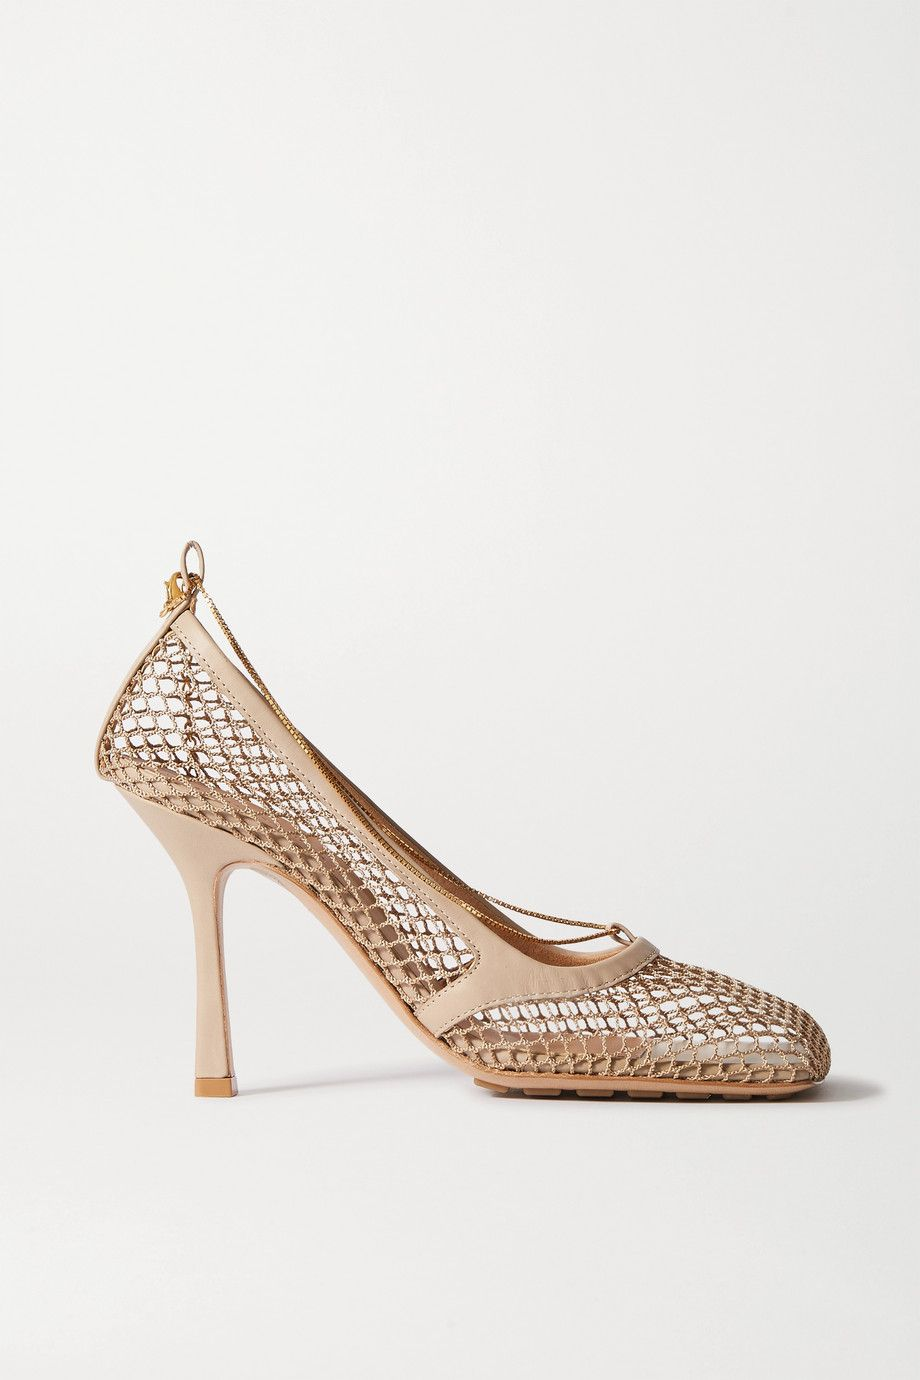 bottega-veneta-beige-chain-embellished-macrame-and-leather-pumps